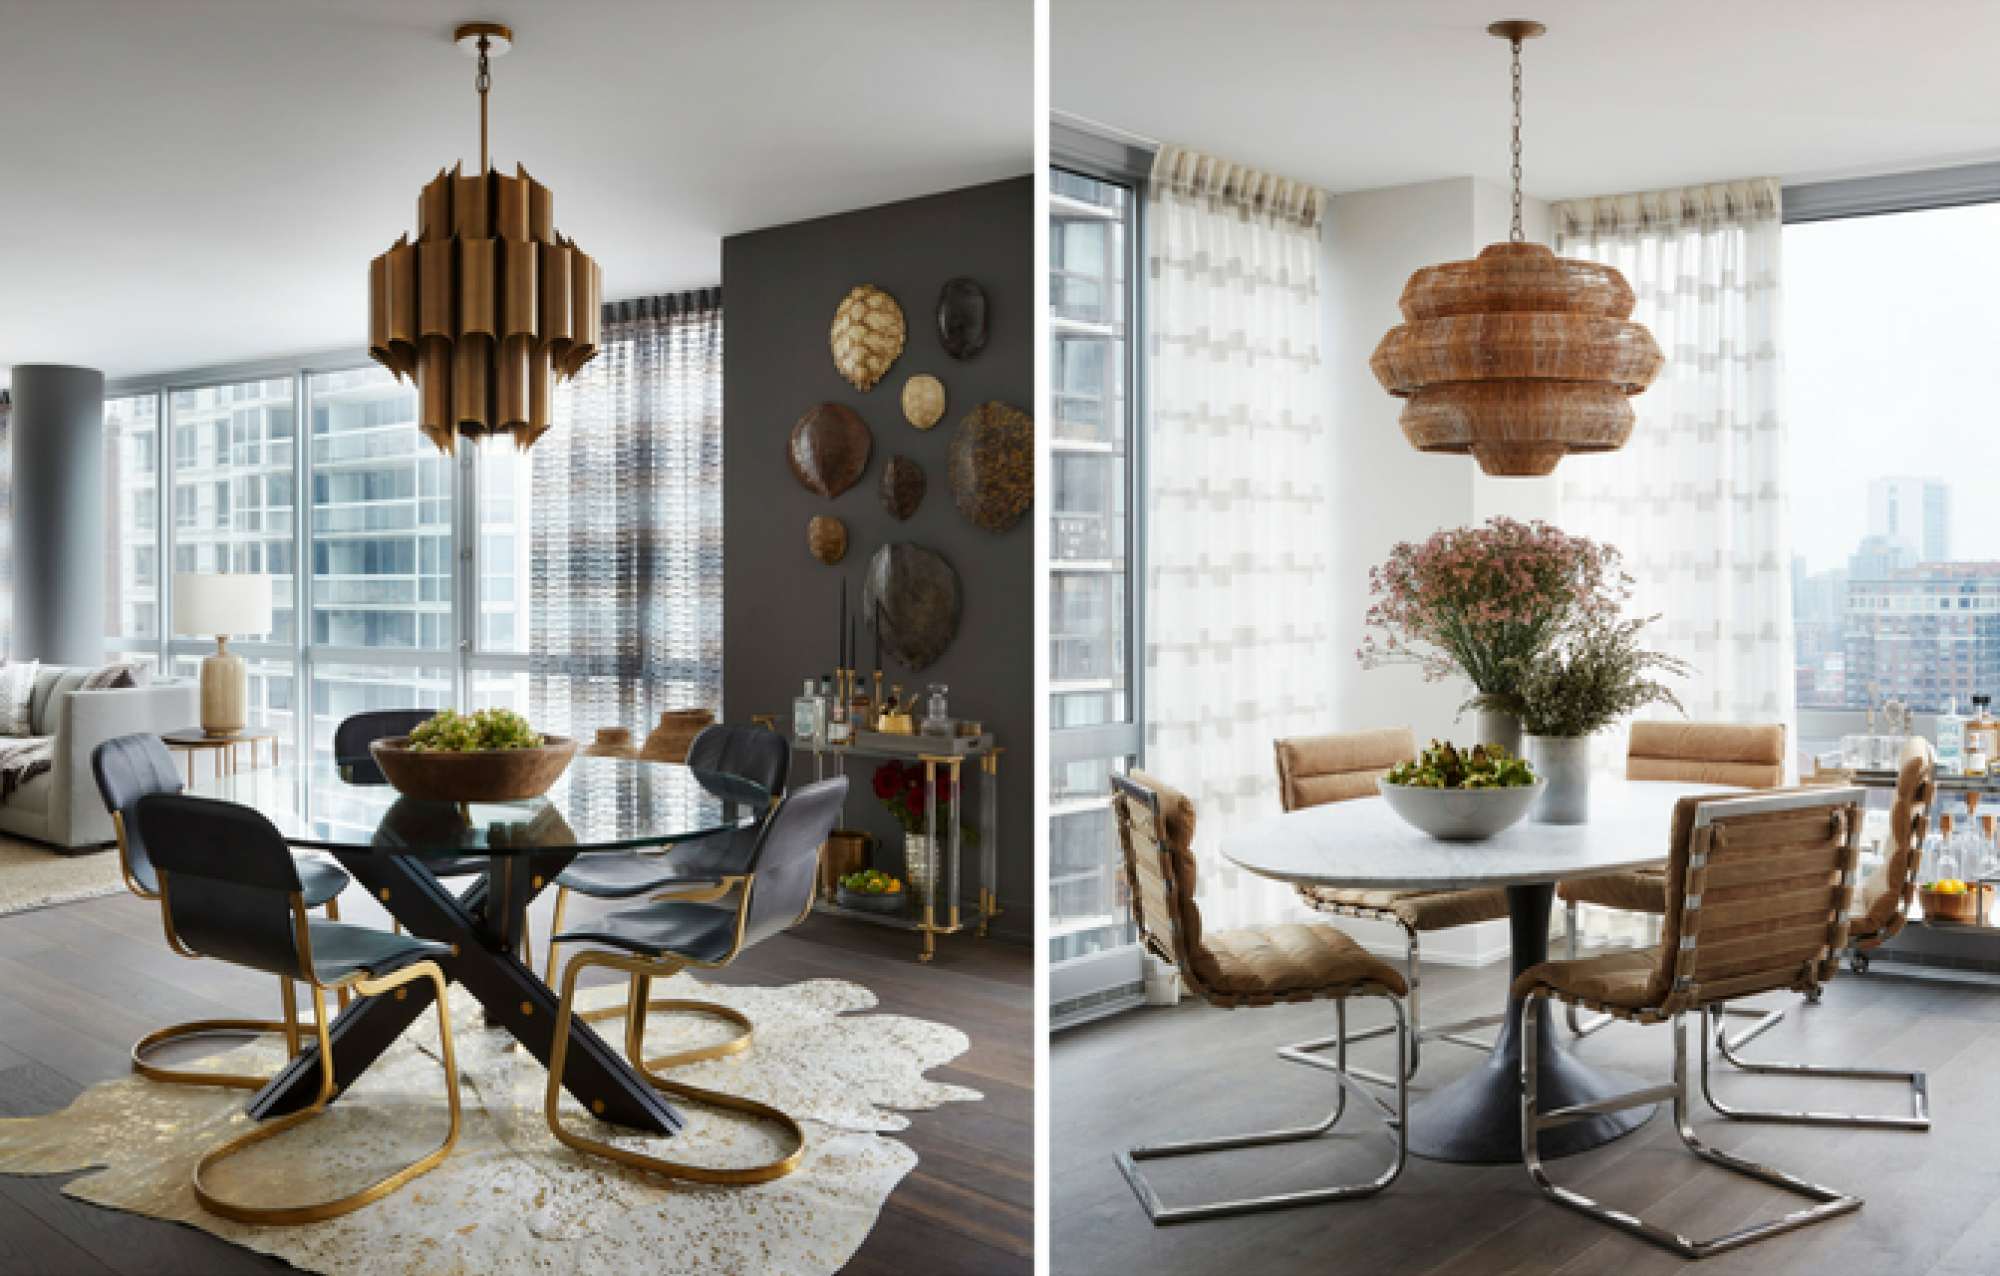 Two different dining areas show how the units at 2 W. Delaware can accommodate different styles and different needs. (Image: Jessica Lagrange Interiors)